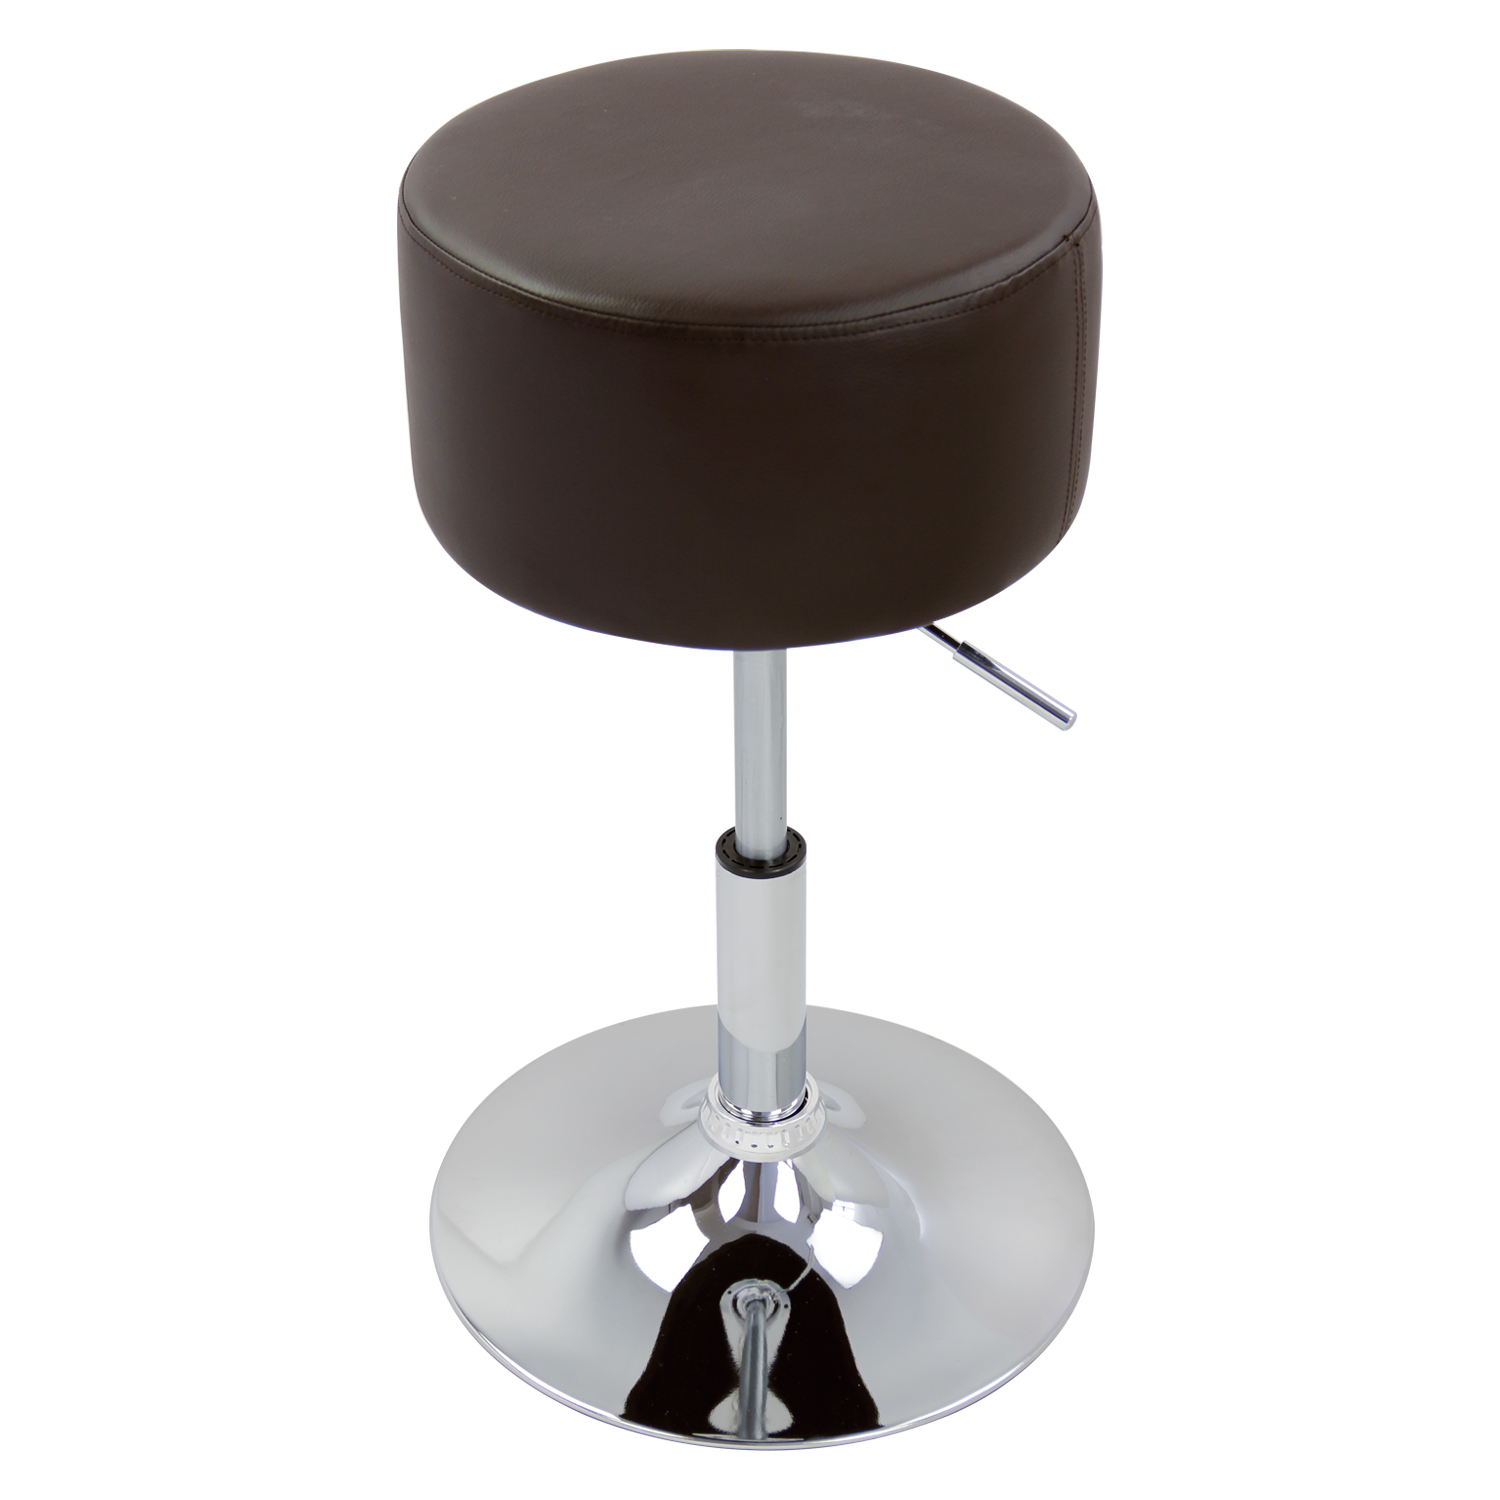 1 2 pcs bar stools faux leather adjustable kitchen breakfast stool chair u007 ebay. Black Bedroom Furniture Sets. Home Design Ideas